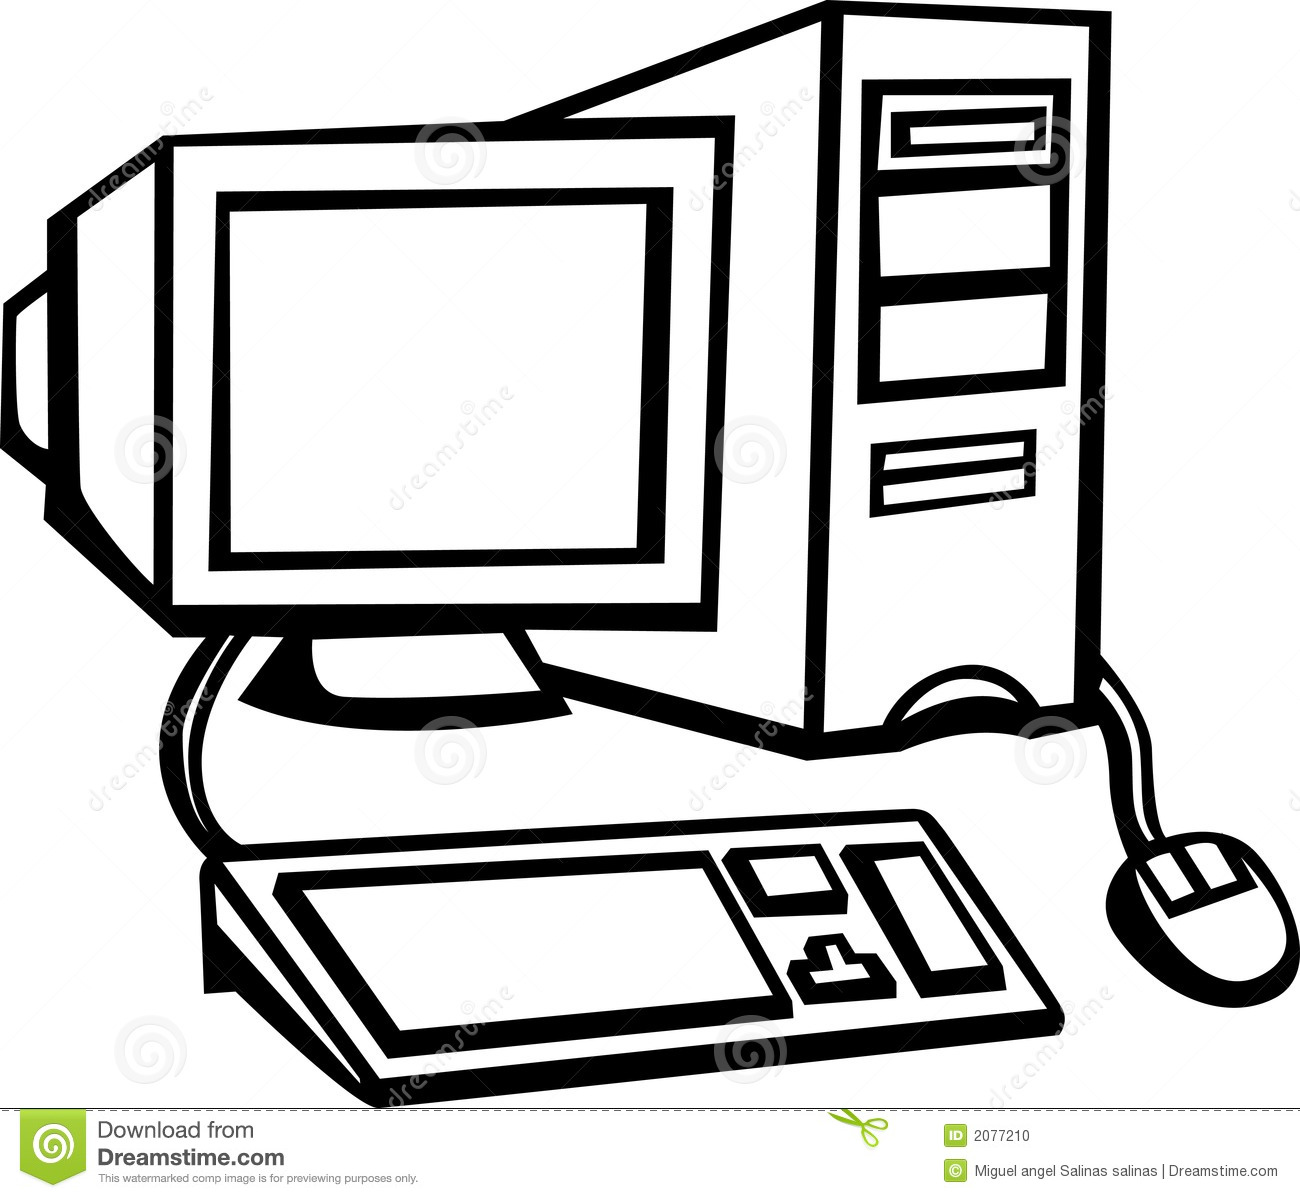 Computer Parts Clipart Black And White.